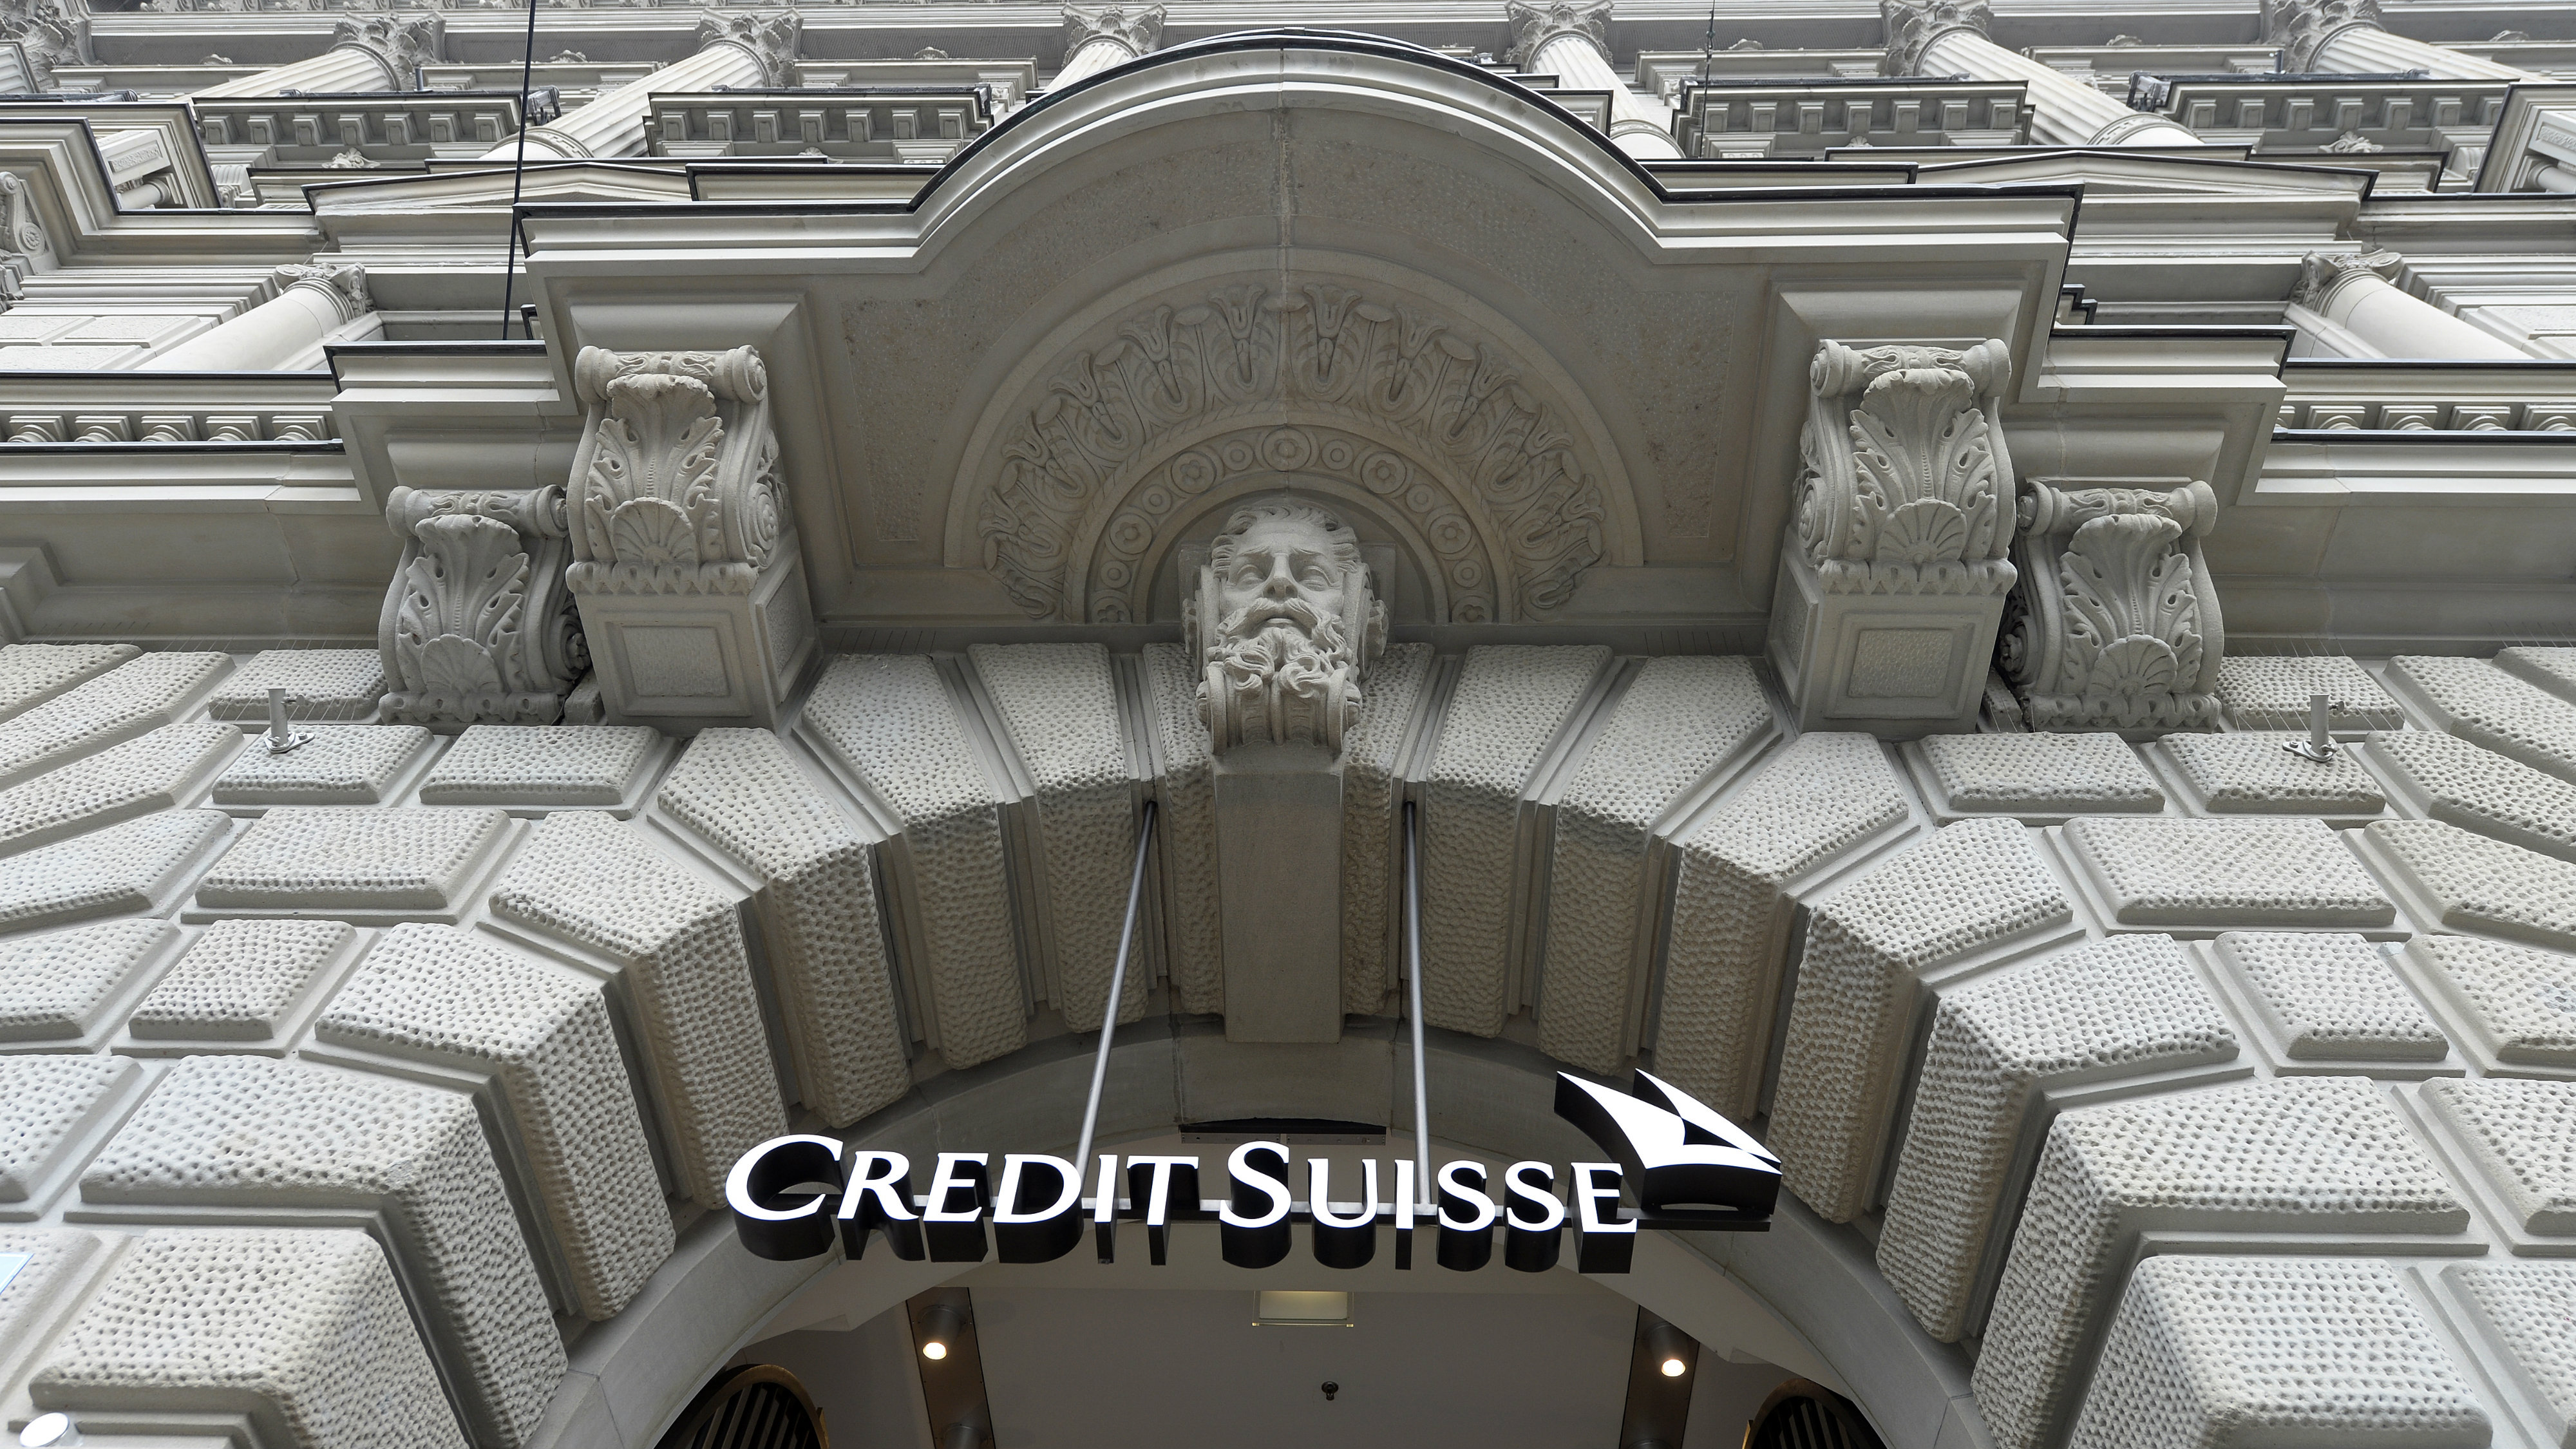 file picture dated 21 October 2015 shows Swiss bank Credit Suisse in the headquarter on Paradeplatz in Zurich, Switzerland. Credit Suisse has agreed to pay US authorities 2.48 billion US dollars to settle claims that it misled investors in residential mortgage-backed securities it sold in the run-up to the 2008 financial crisis, Credit Suisse stated on 23 December 2016.